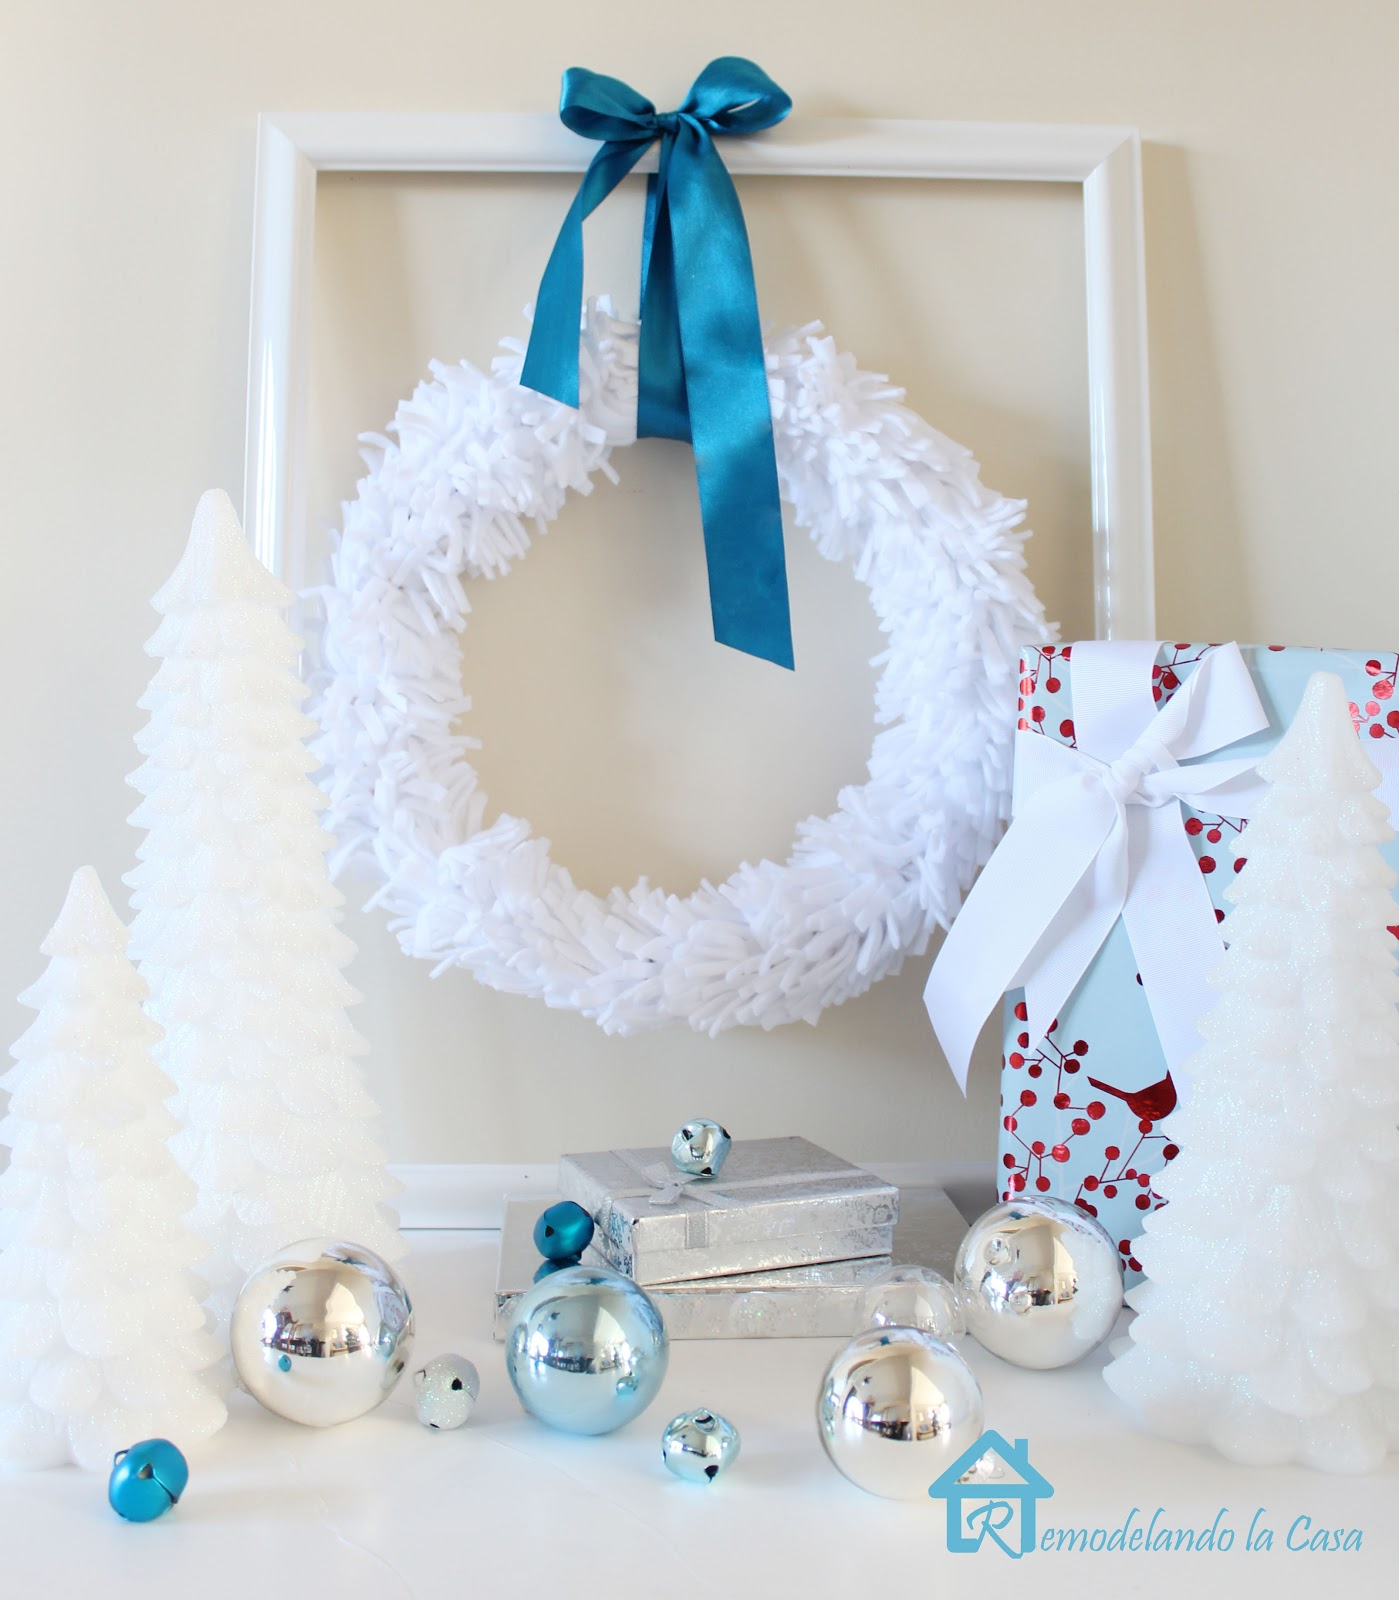 Remodelando la casa winter white wreath